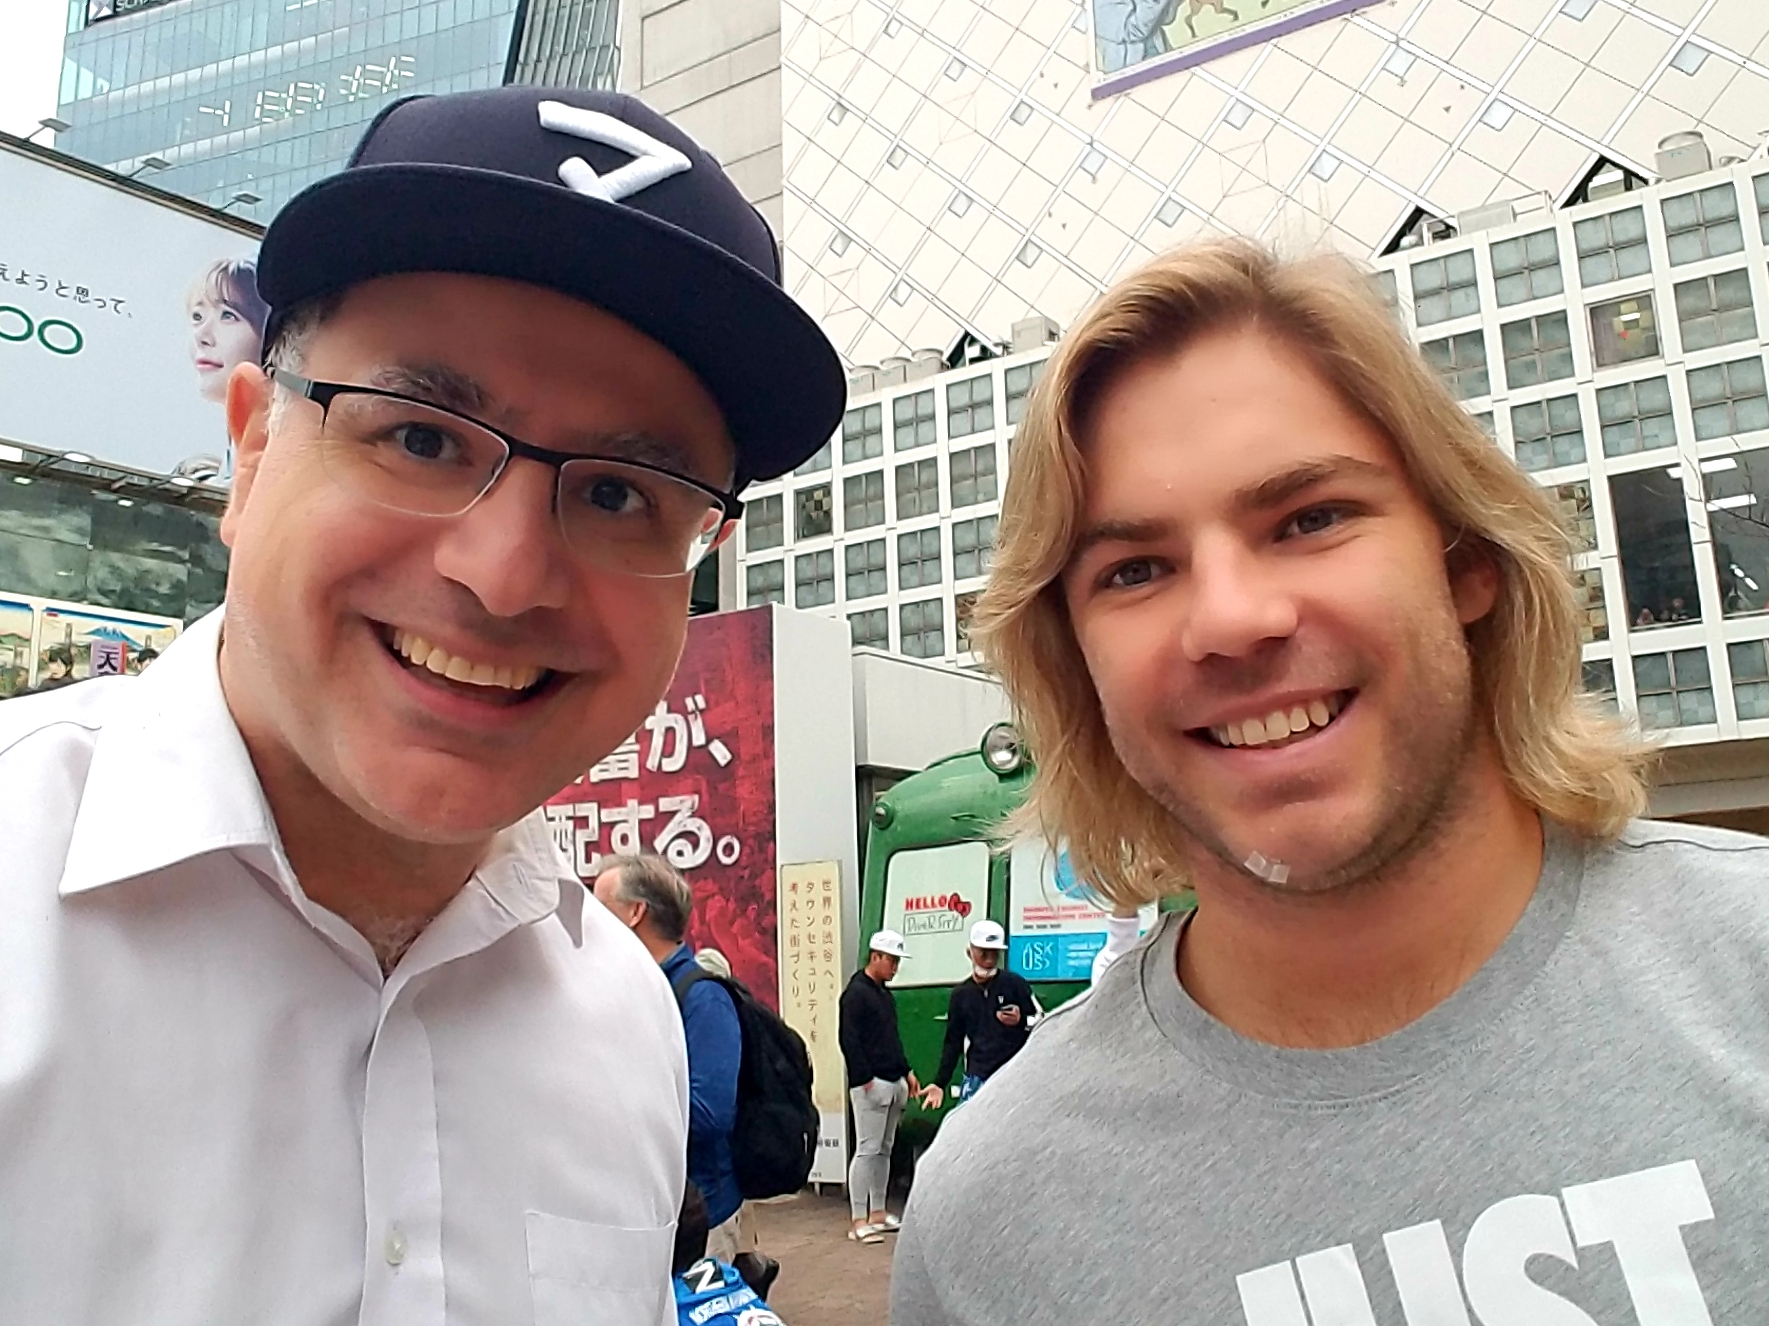 Mac meet Faf De Klerk - South Africa Scrum-Half - in Shibuya